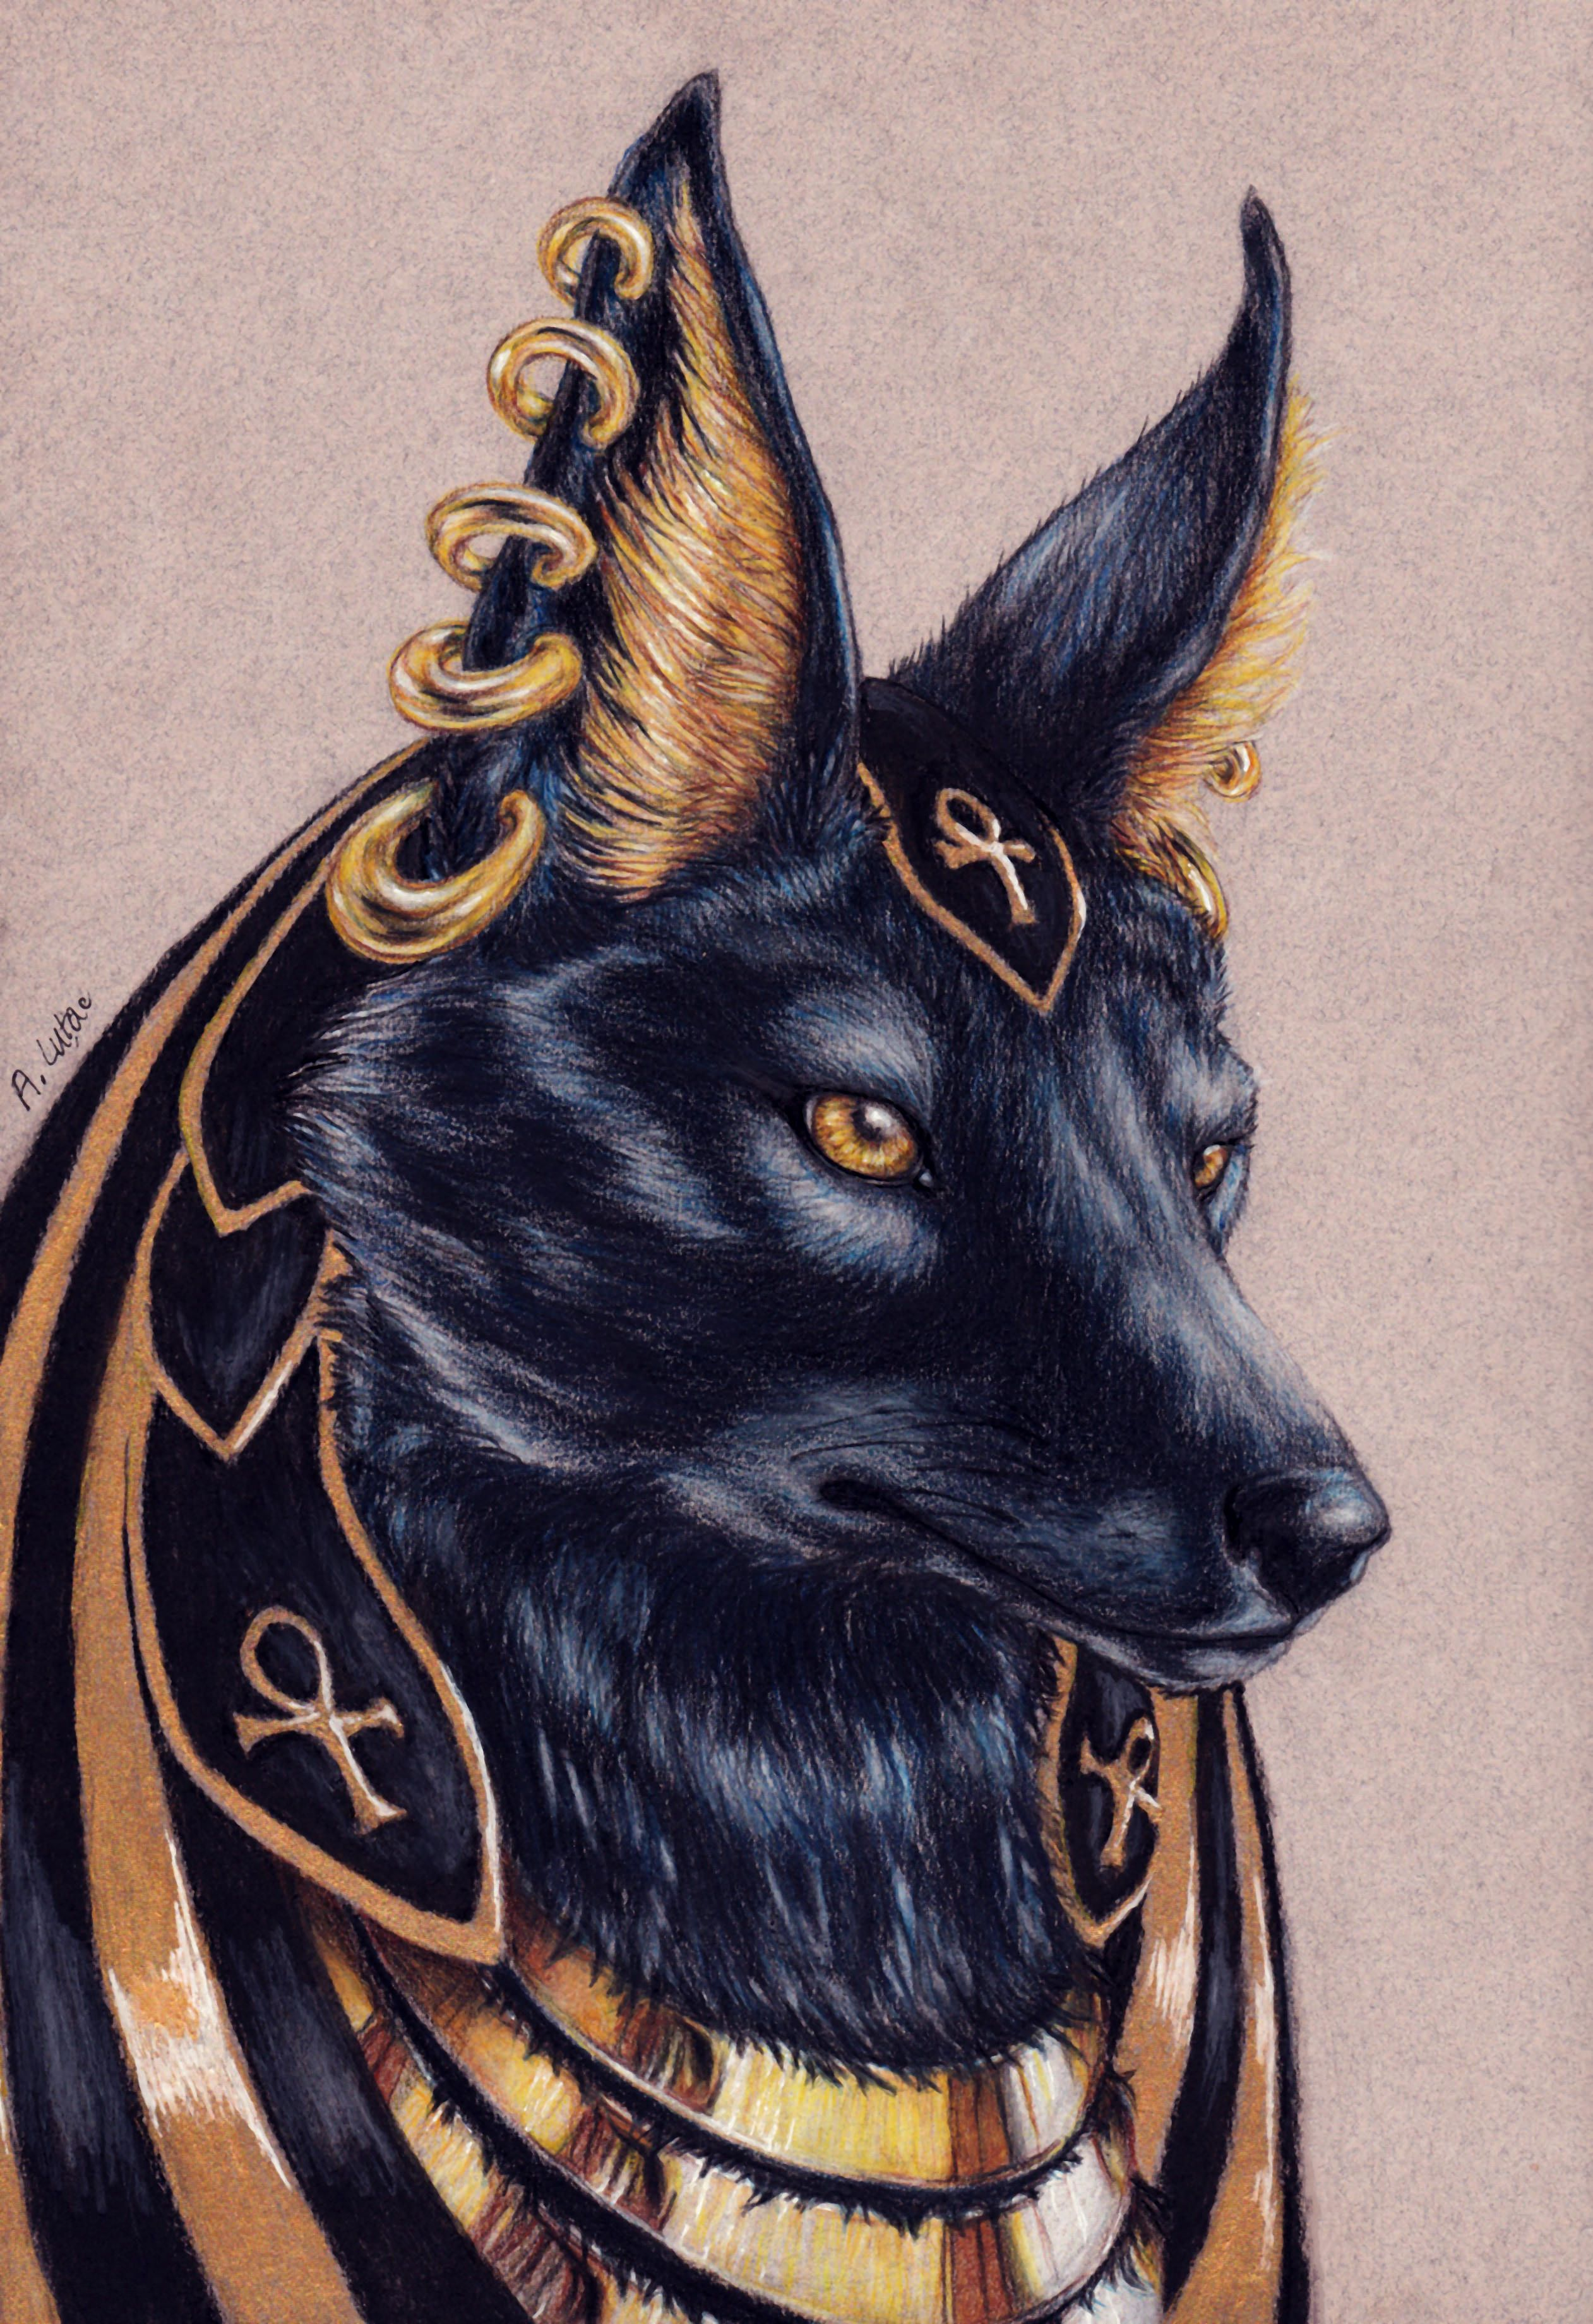 Pin by May Stevens on Abi's Art in 2019 | Anubis, Anubis